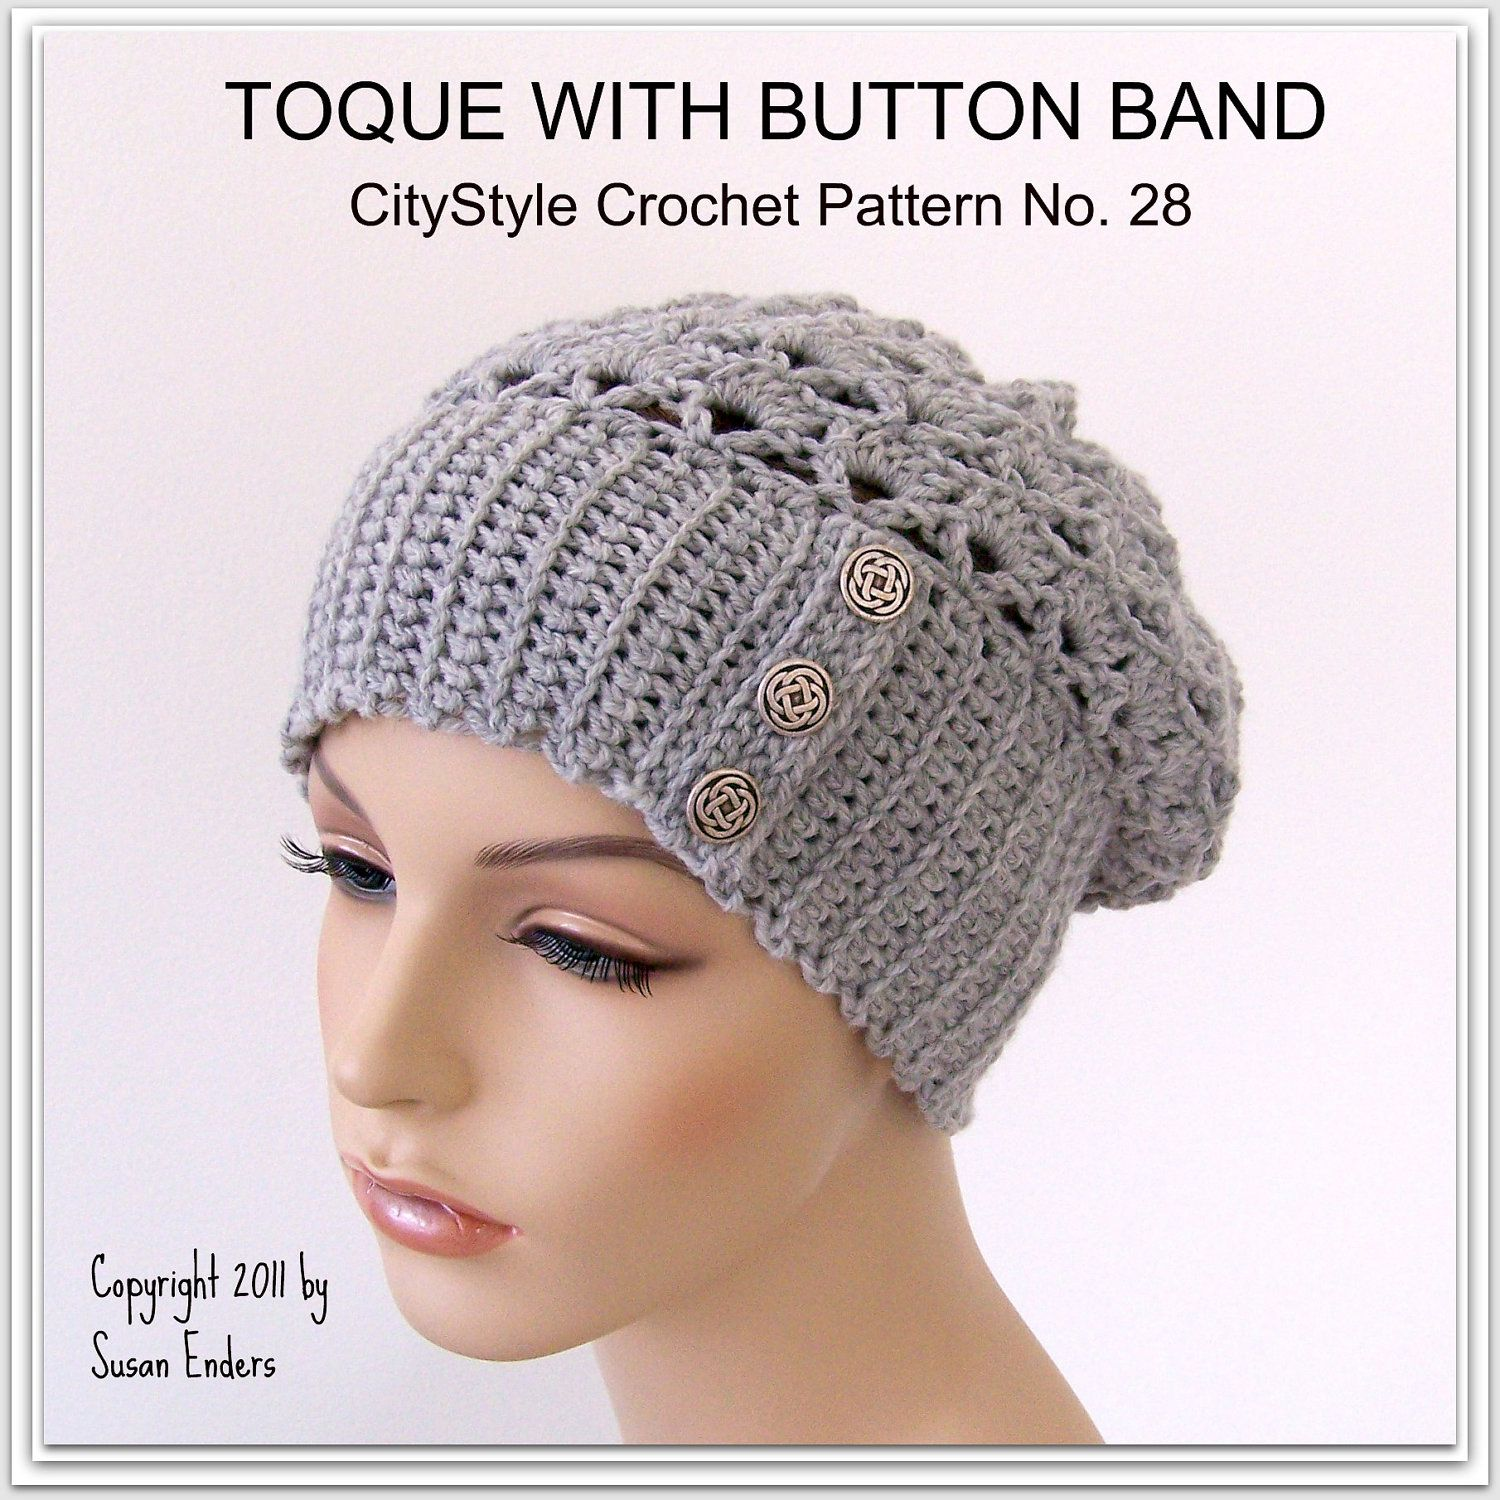 Crochet hat pattern for toque hat or earwarmer with button band crochet hat pattern for toque hat or earwarmer with button band sell what you make bankloansurffo Images